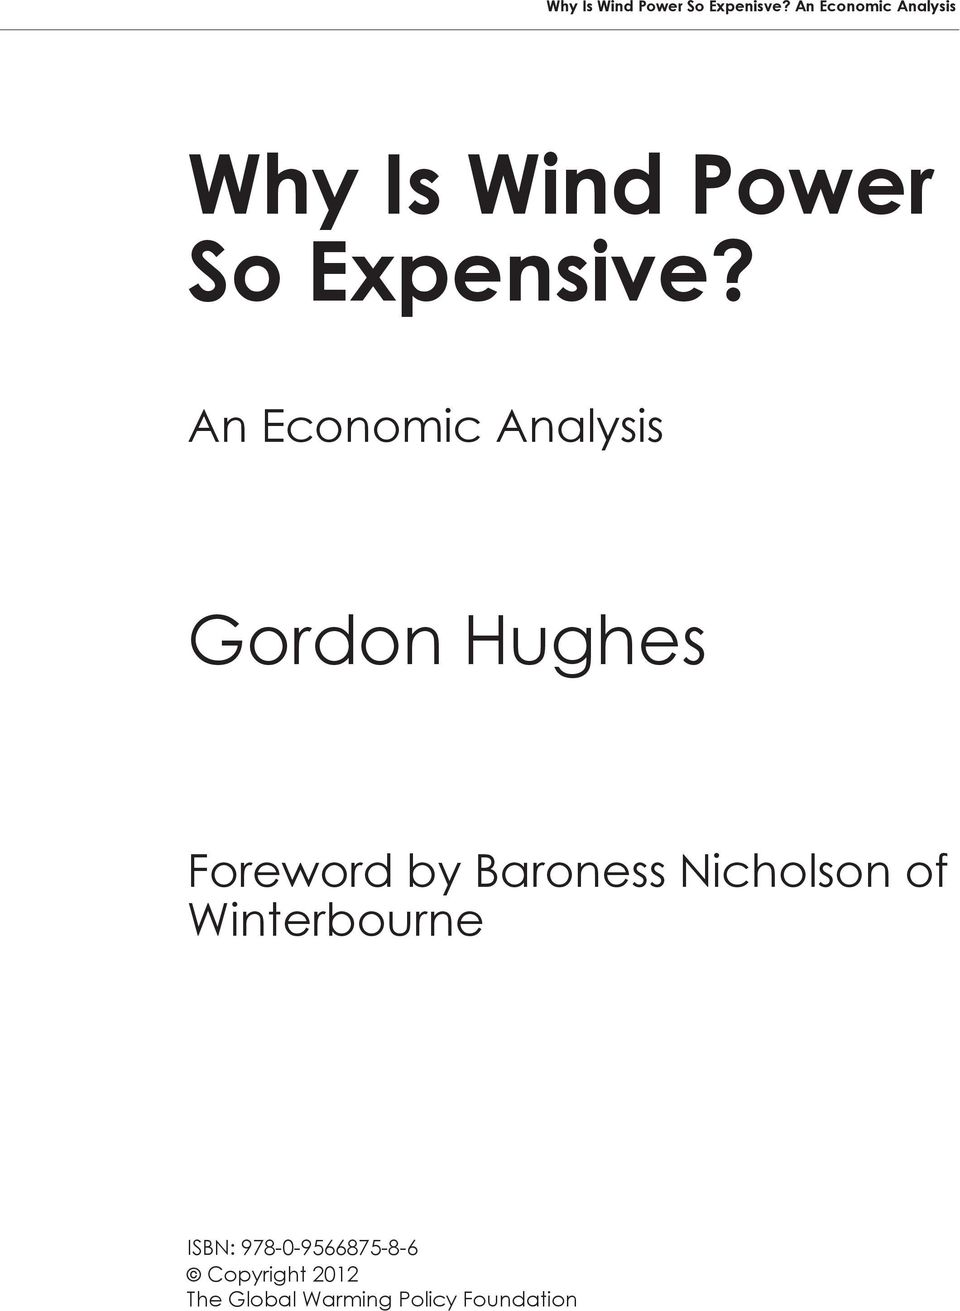 An Economic Analysis Gordon Hughes Foreword by Baroness